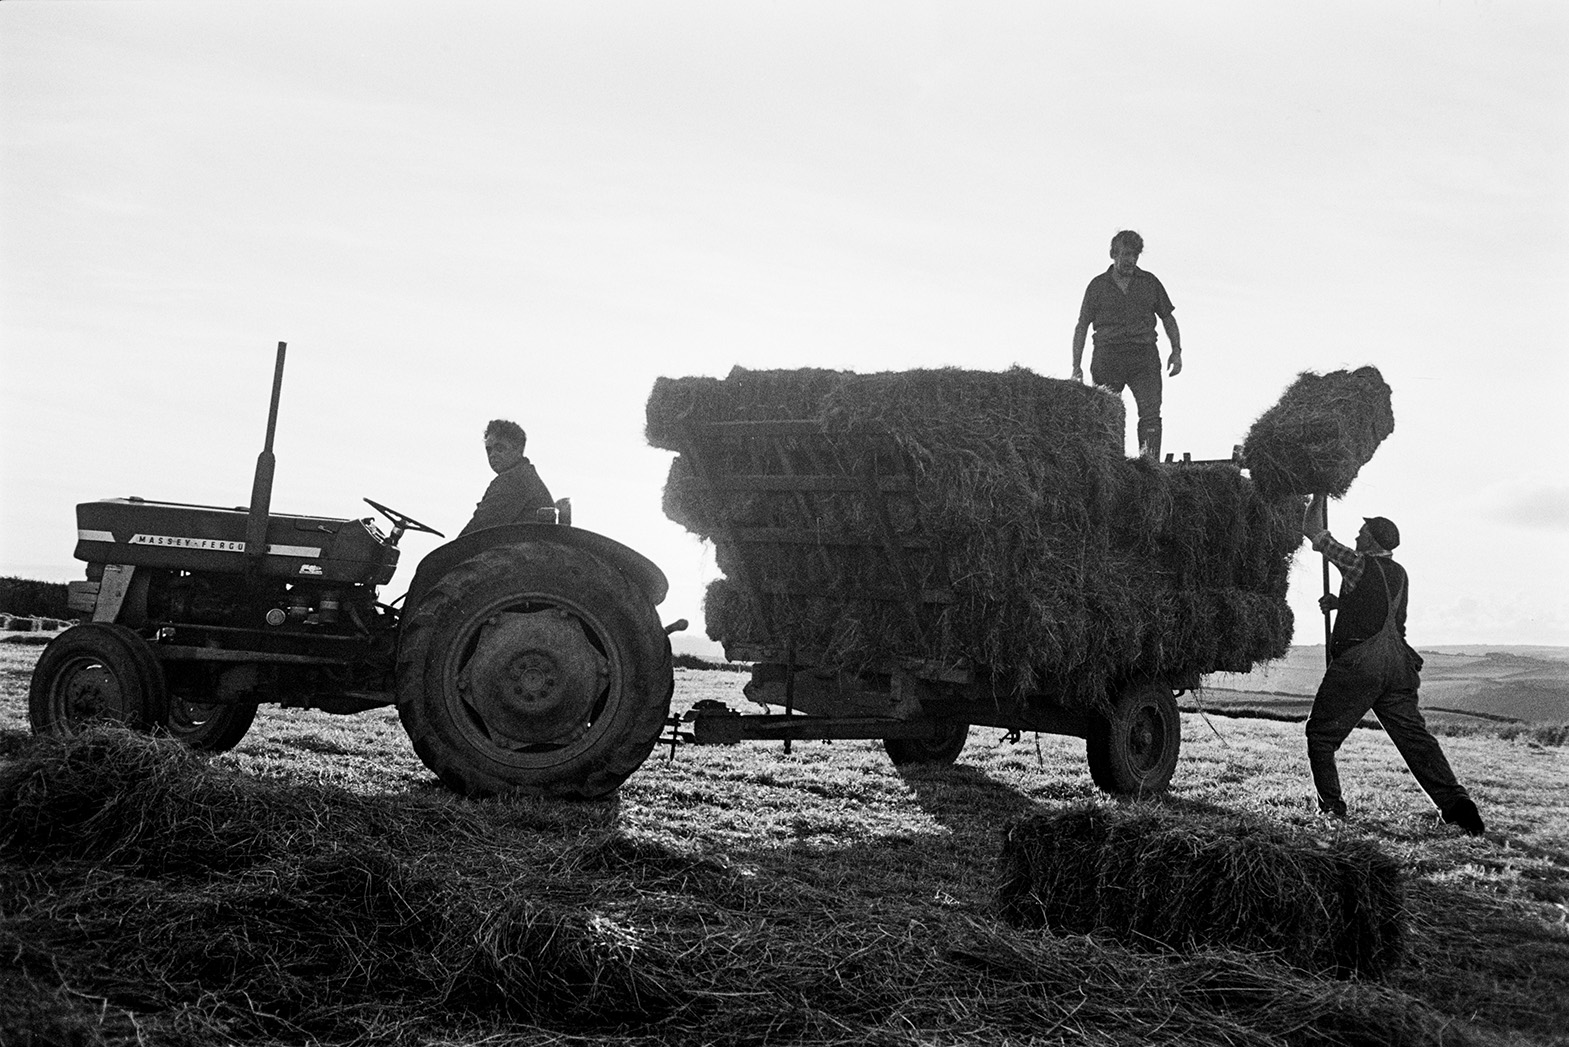 Men loading hay bales onto a trailer using pitchforks, in a field at Beaford. One man is sat on the tractor.